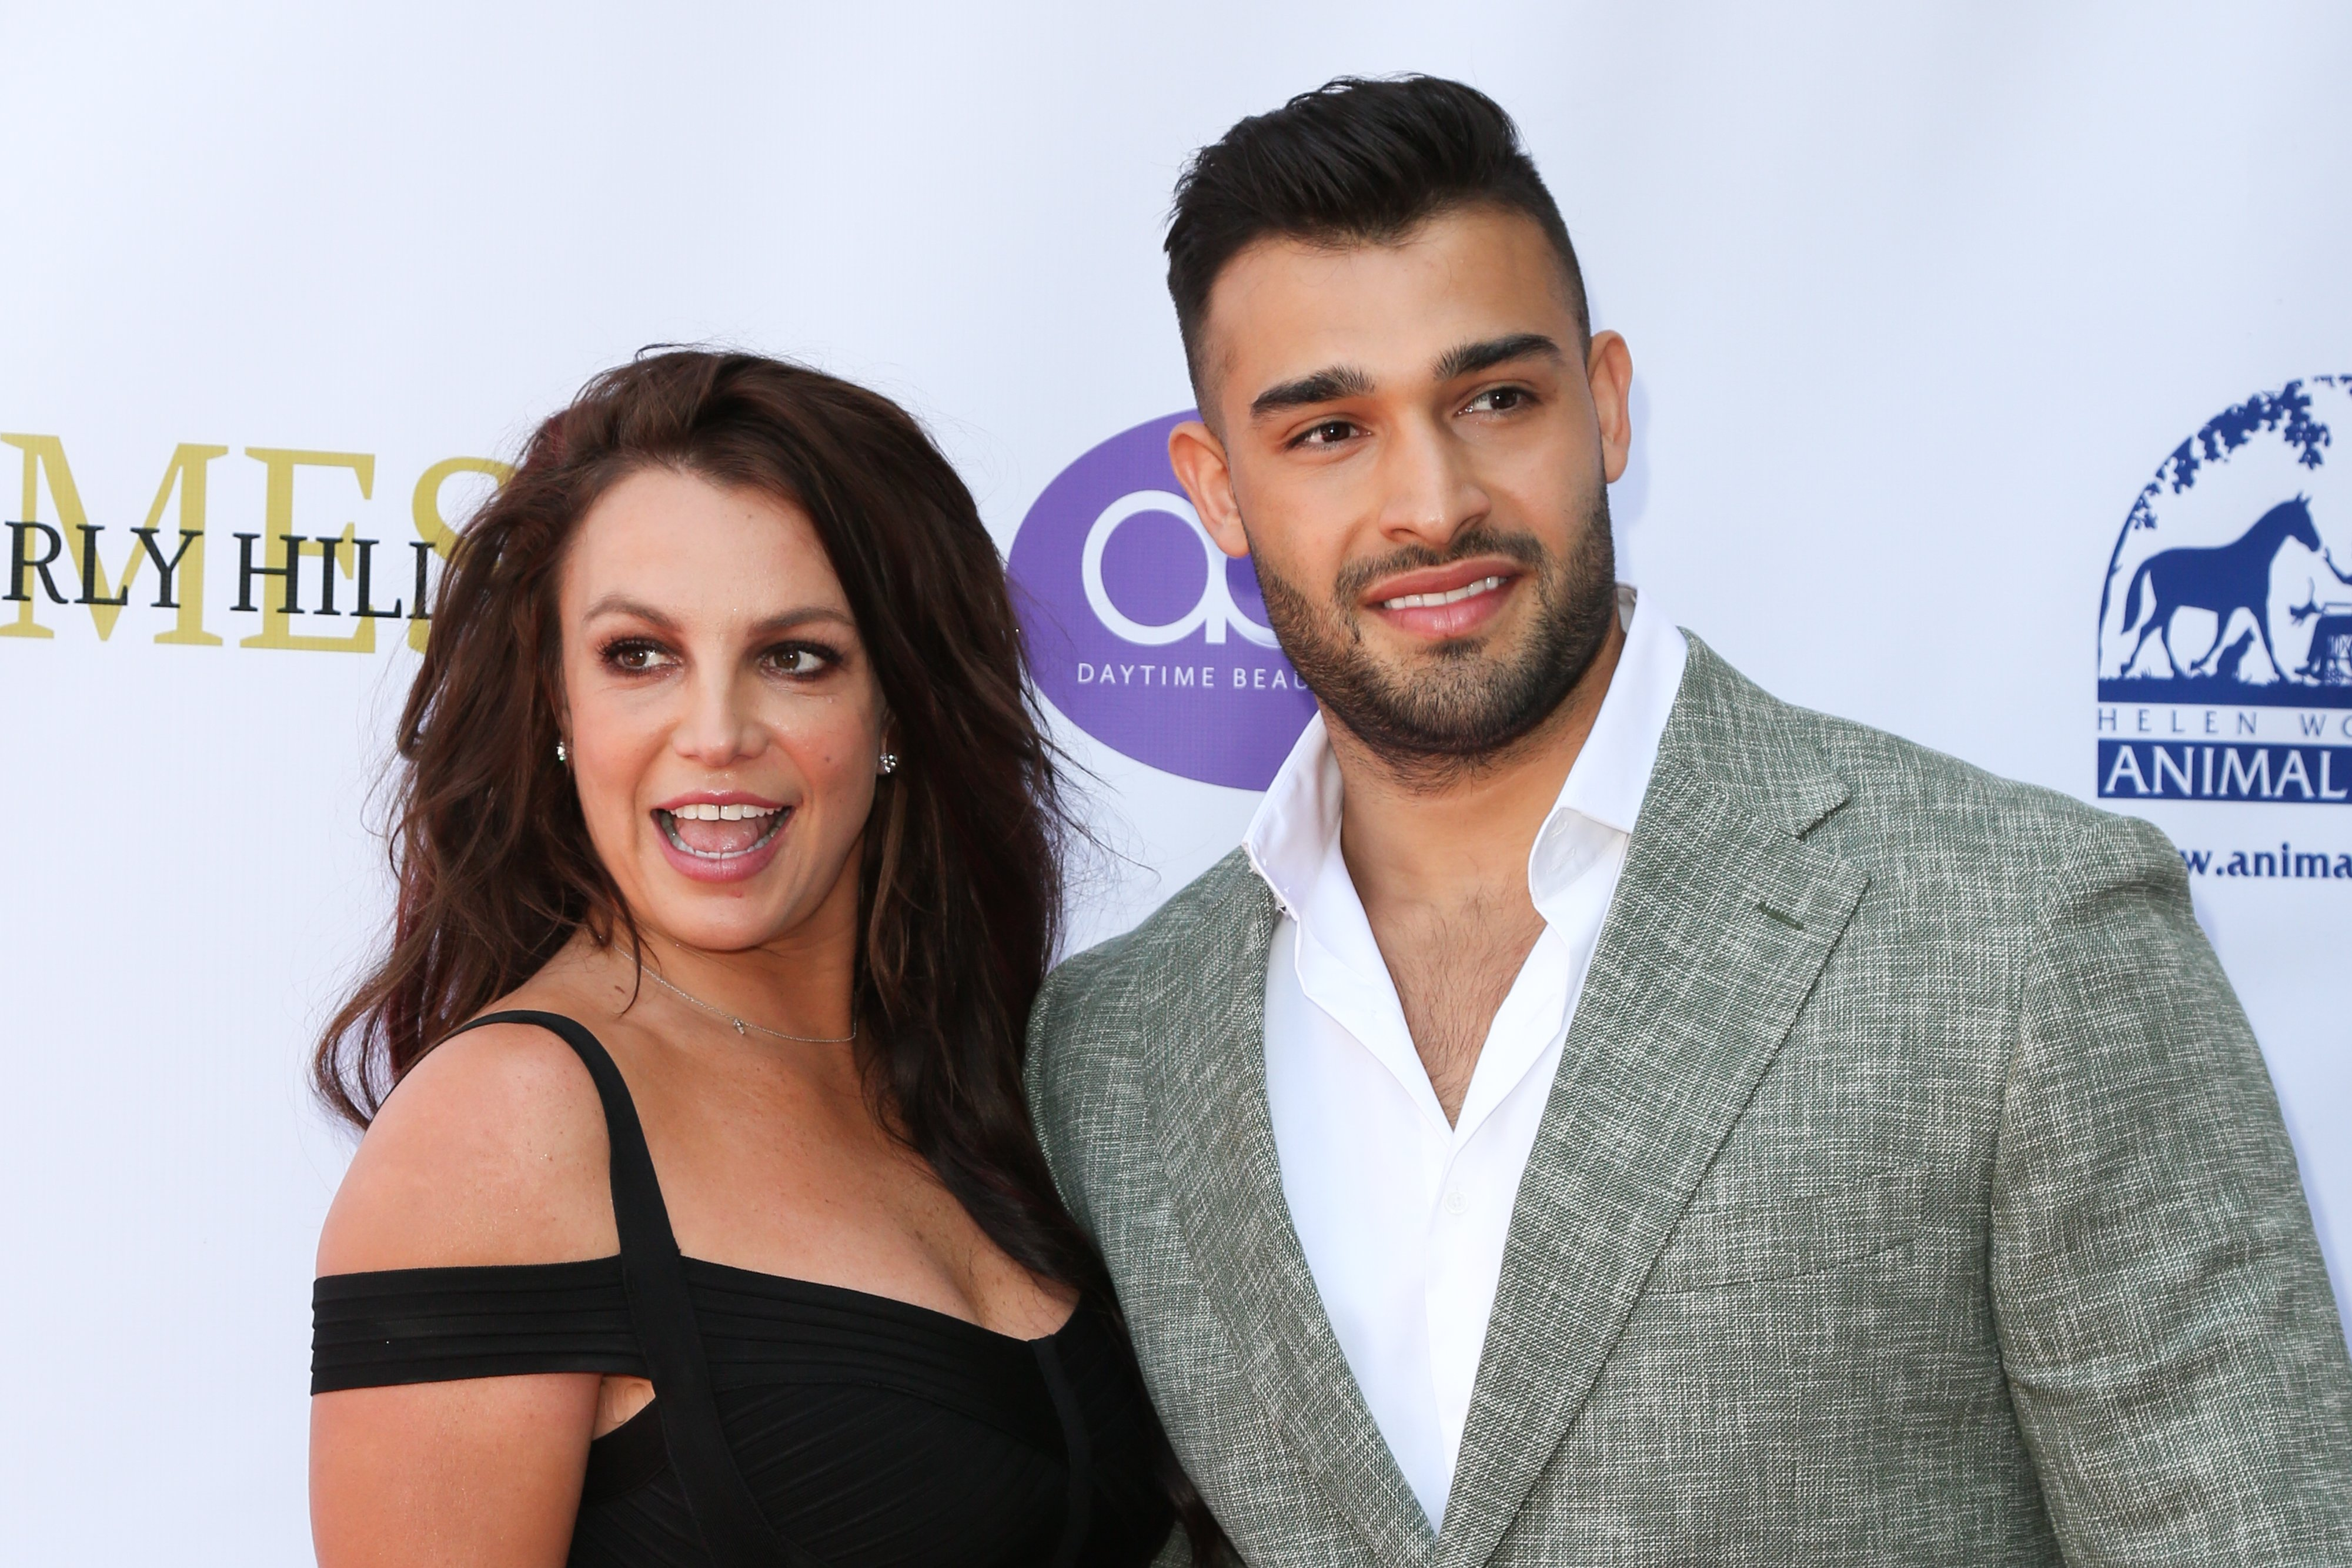 Britney Spears and Sam Ashgari at the 'Daytime Beauty Awards' in L.A., September, 2019. | Photo: Getty Images.